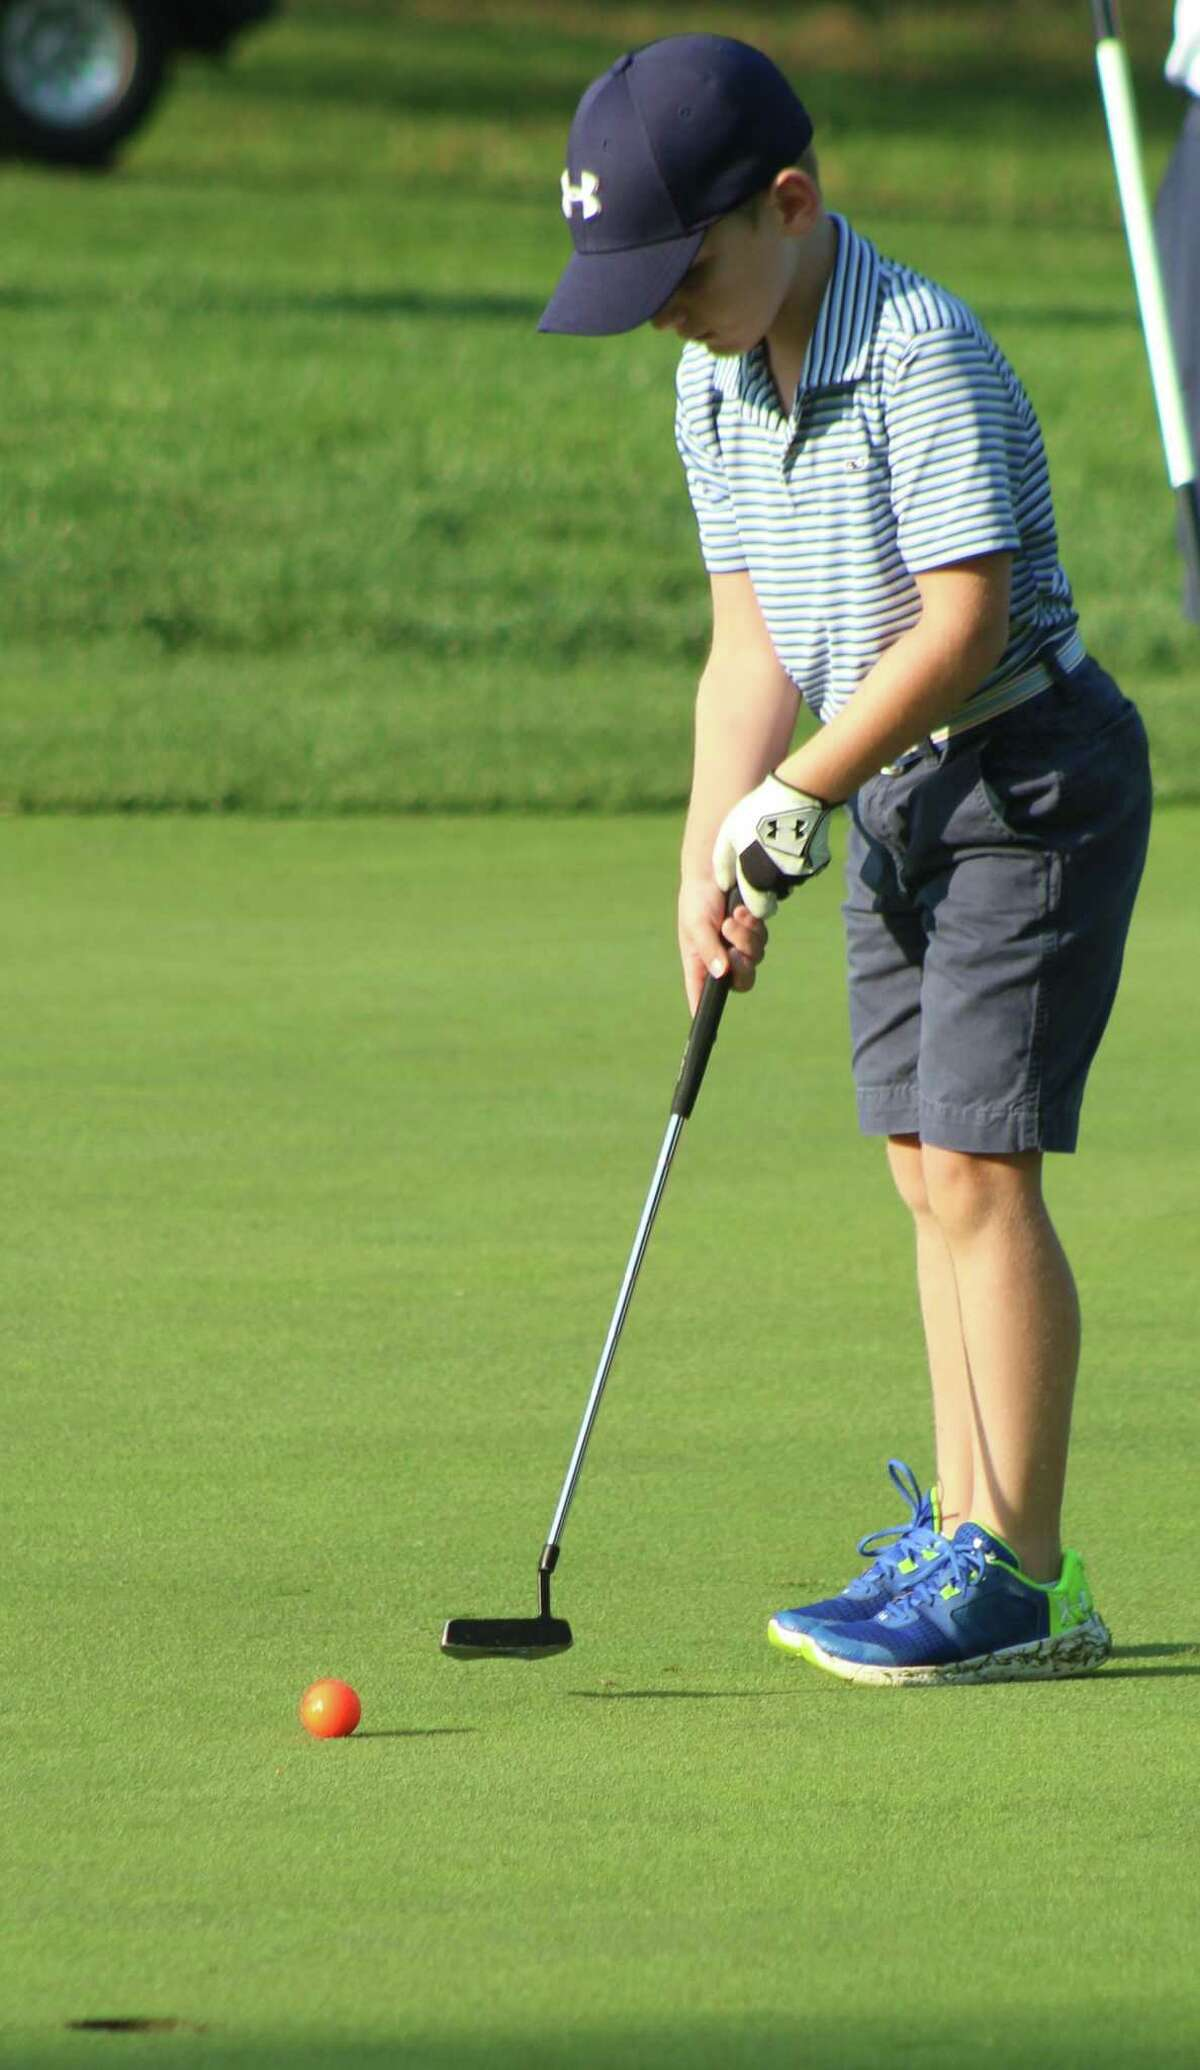 Jack Schonfeld putts on the 18th green at the Fran McCarthy Junior Golf Tournament at Richter Park Golf Course in Danbury Aug. 21, 2017.